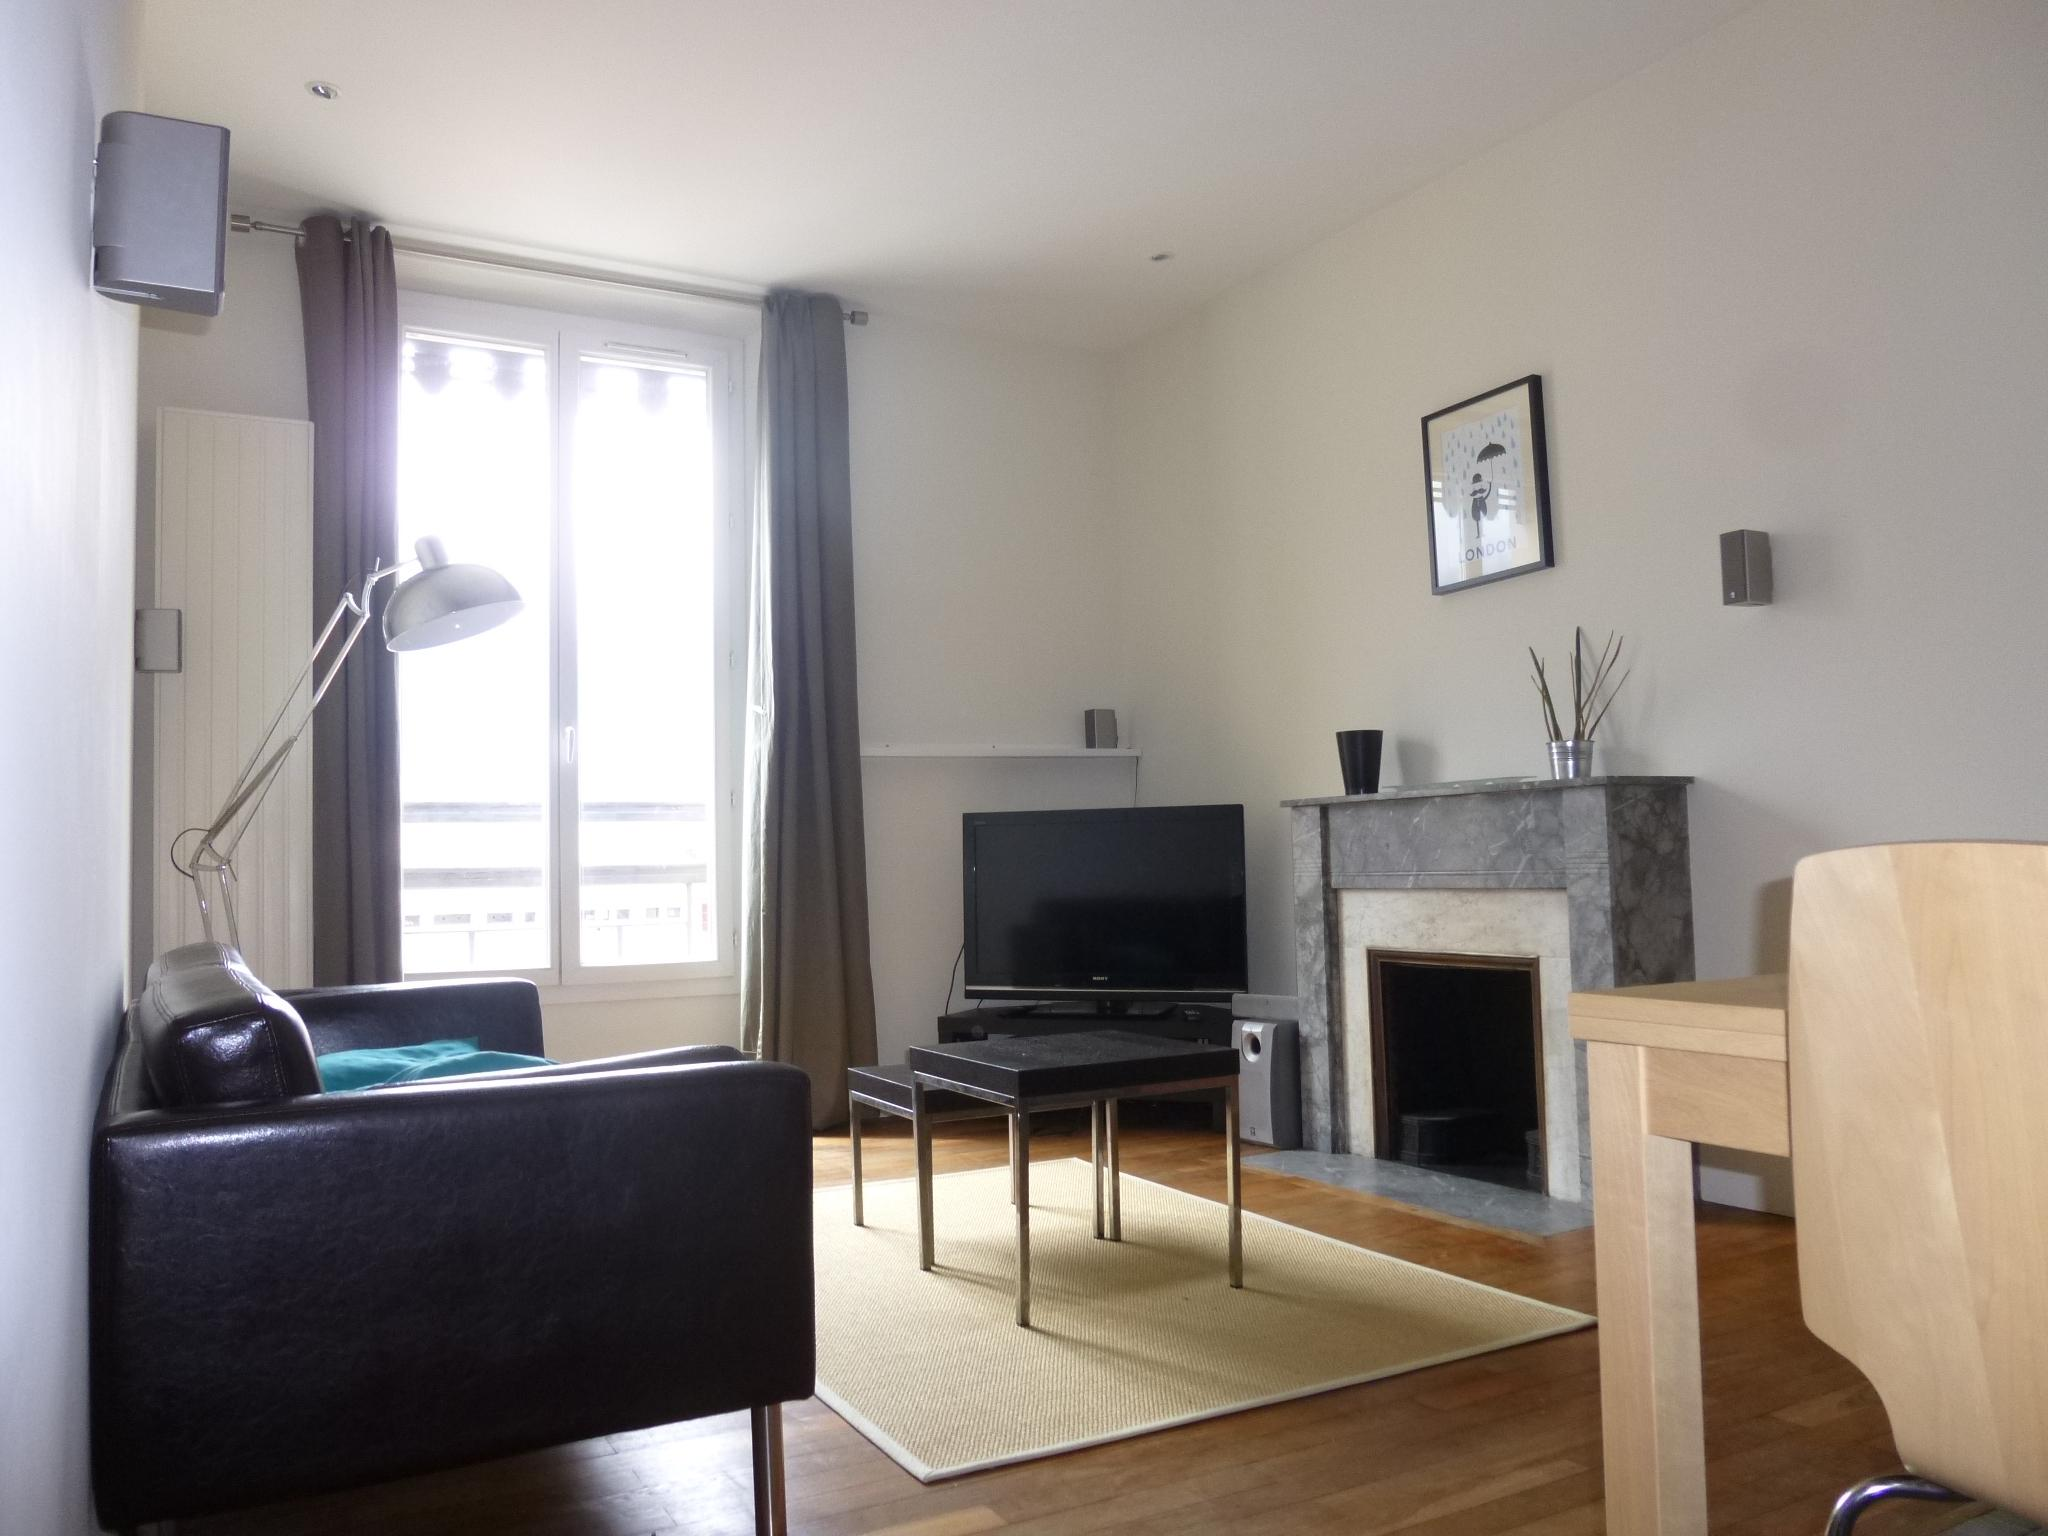 Location appartement caen quand commencer ses recherches for Location appartement par agence